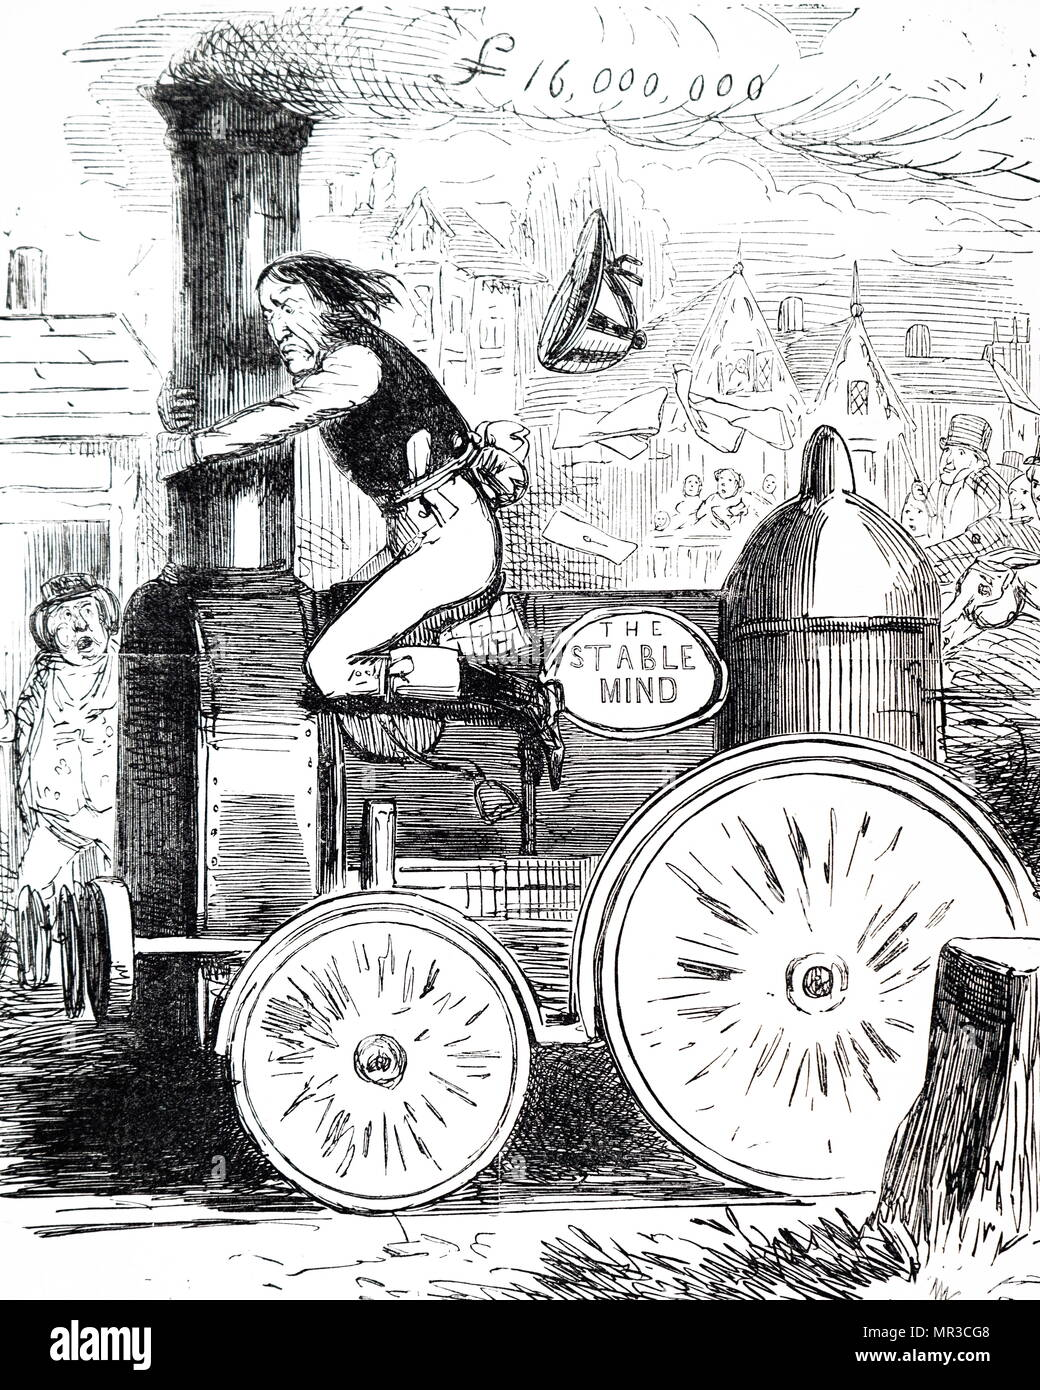 Cartoon analogy of an early train with a horse being ridden by a Jockey, (driver). English circa 1840 - Stock Image